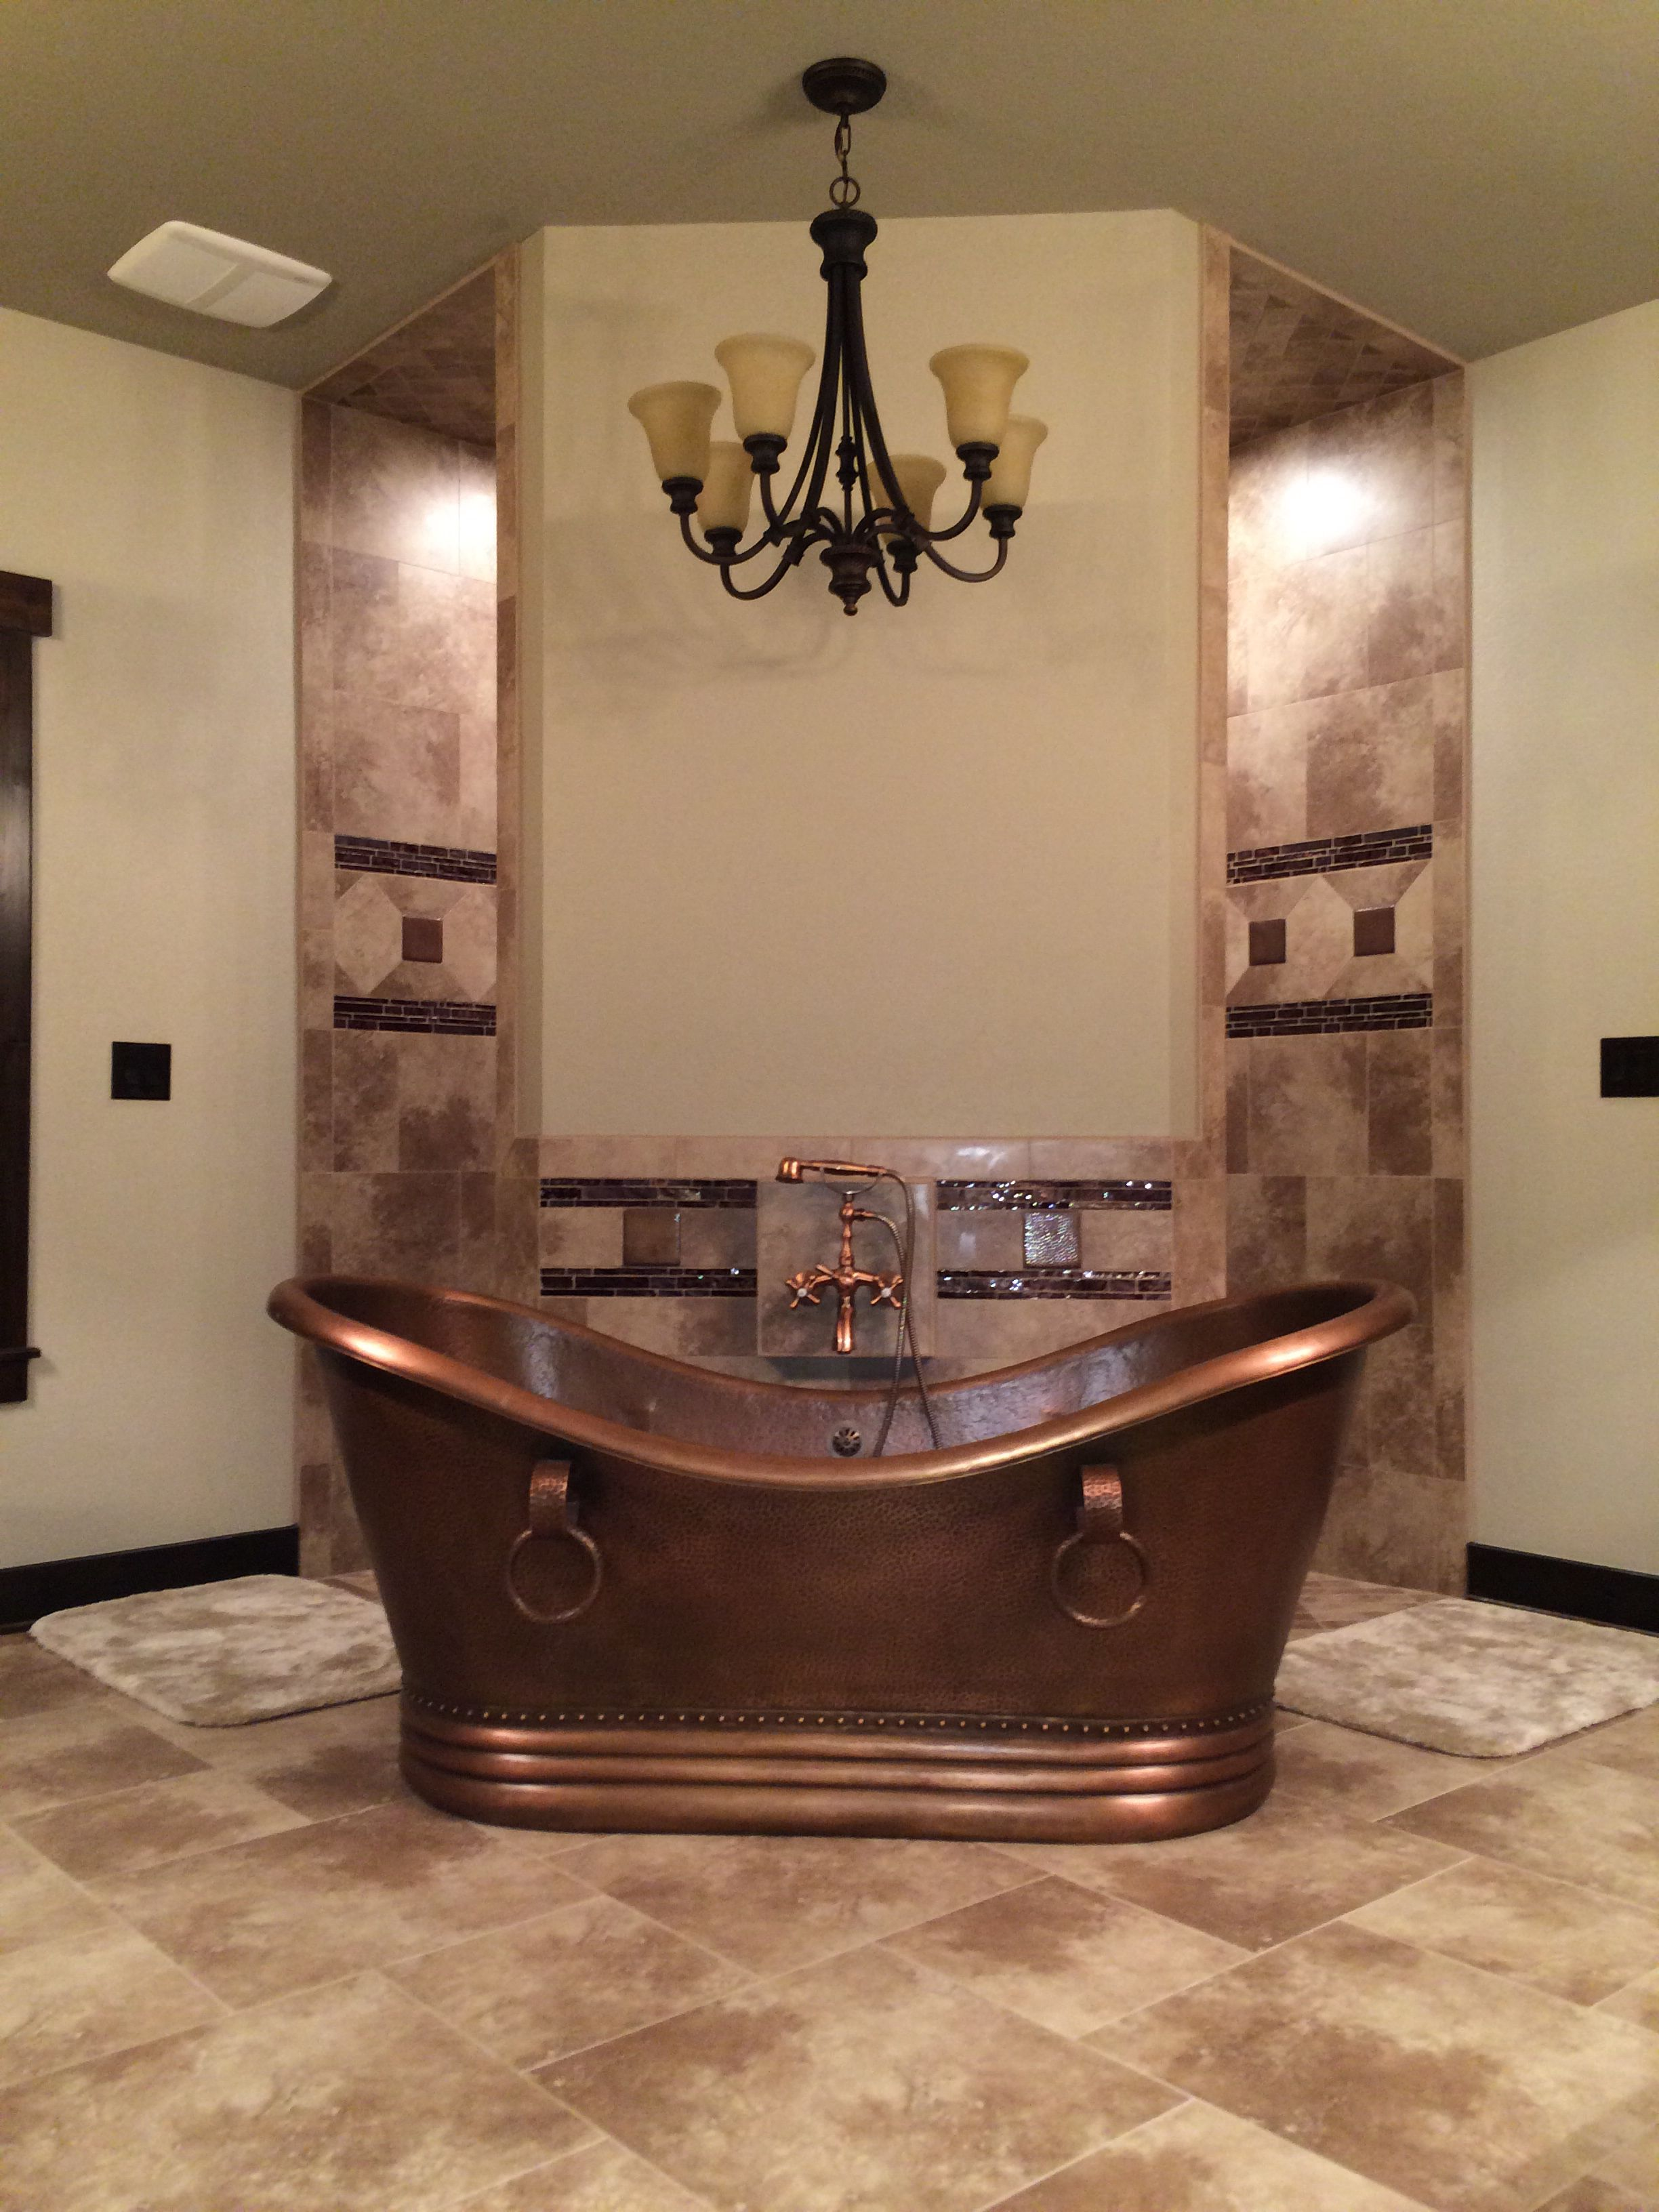 Rustic Bathroom Hammered Copper Tub In Front Of A Corner